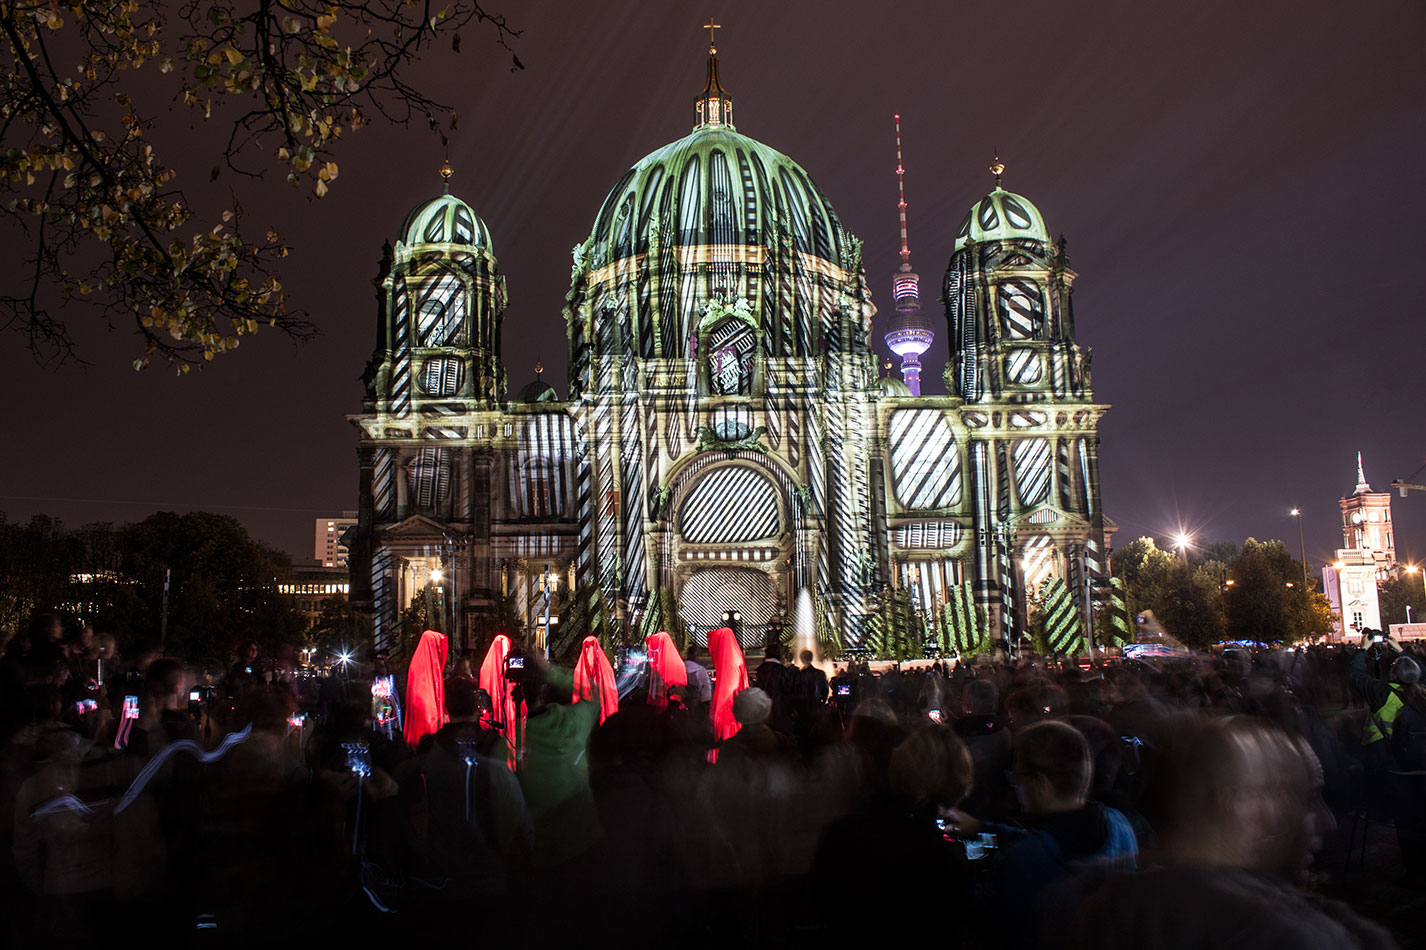 festival-of-lights-old-museum-cathedral-berlin-light-art-show-exhibition-lumina-guardians-of-time-manfred-kili-kielnhofer-contemporary-arts-design-sculpture-3025 - Kopie